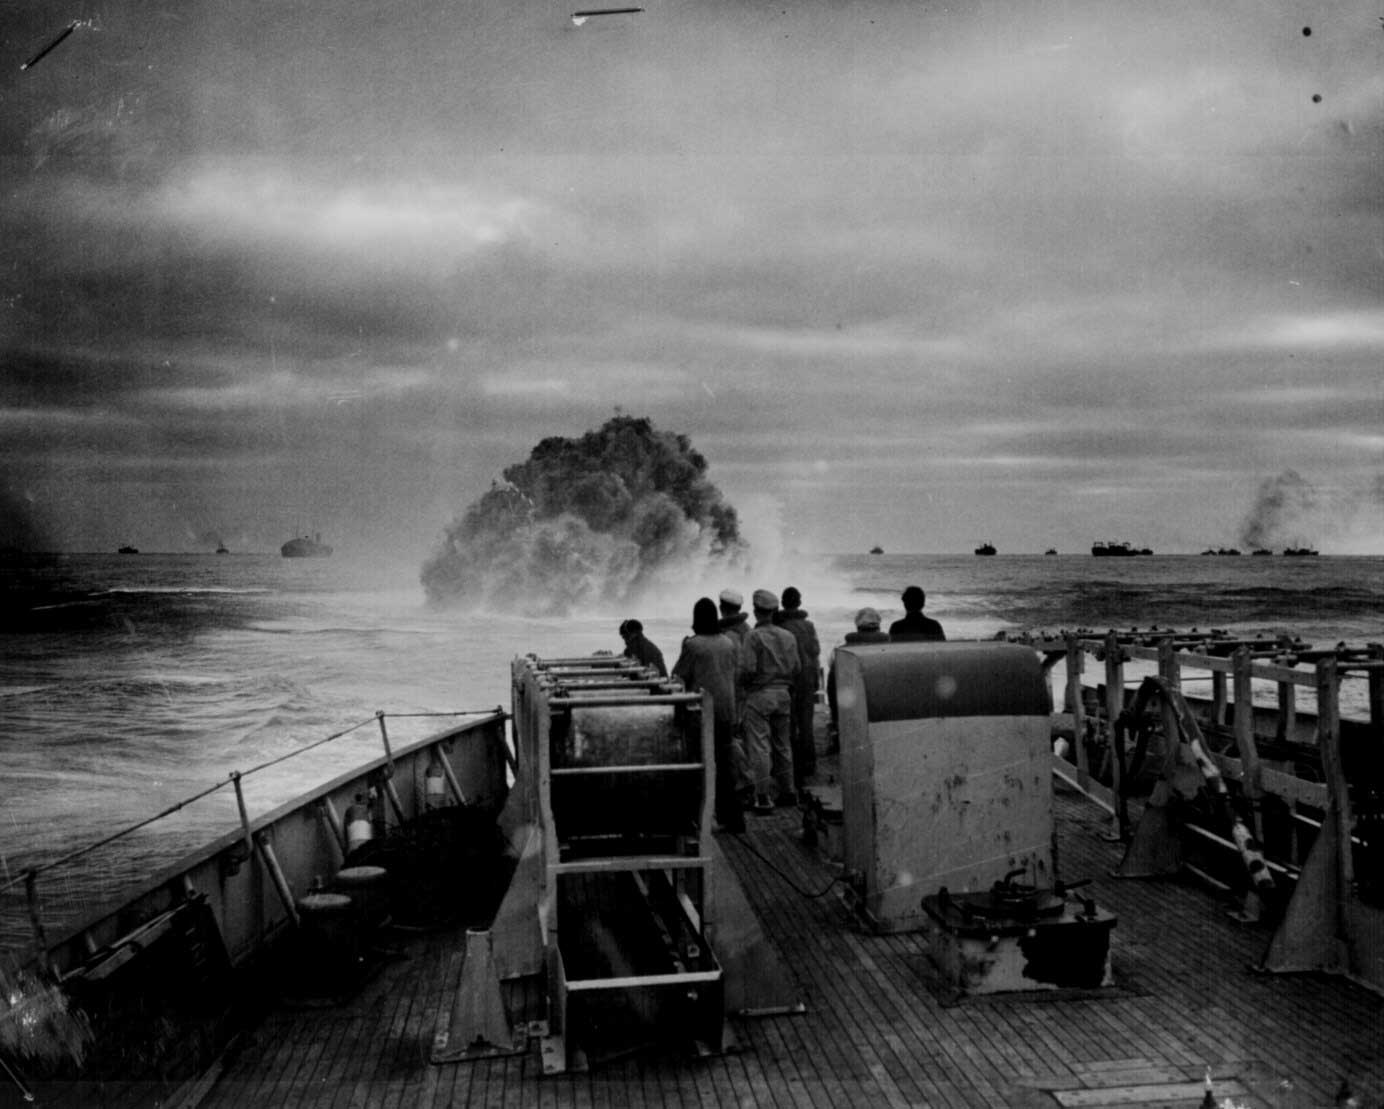 Crew of US Coast Guard Cutter Spencer watch as their depth charge explodes near German U-boat U-175, 17 April 1943 (US National Archives)